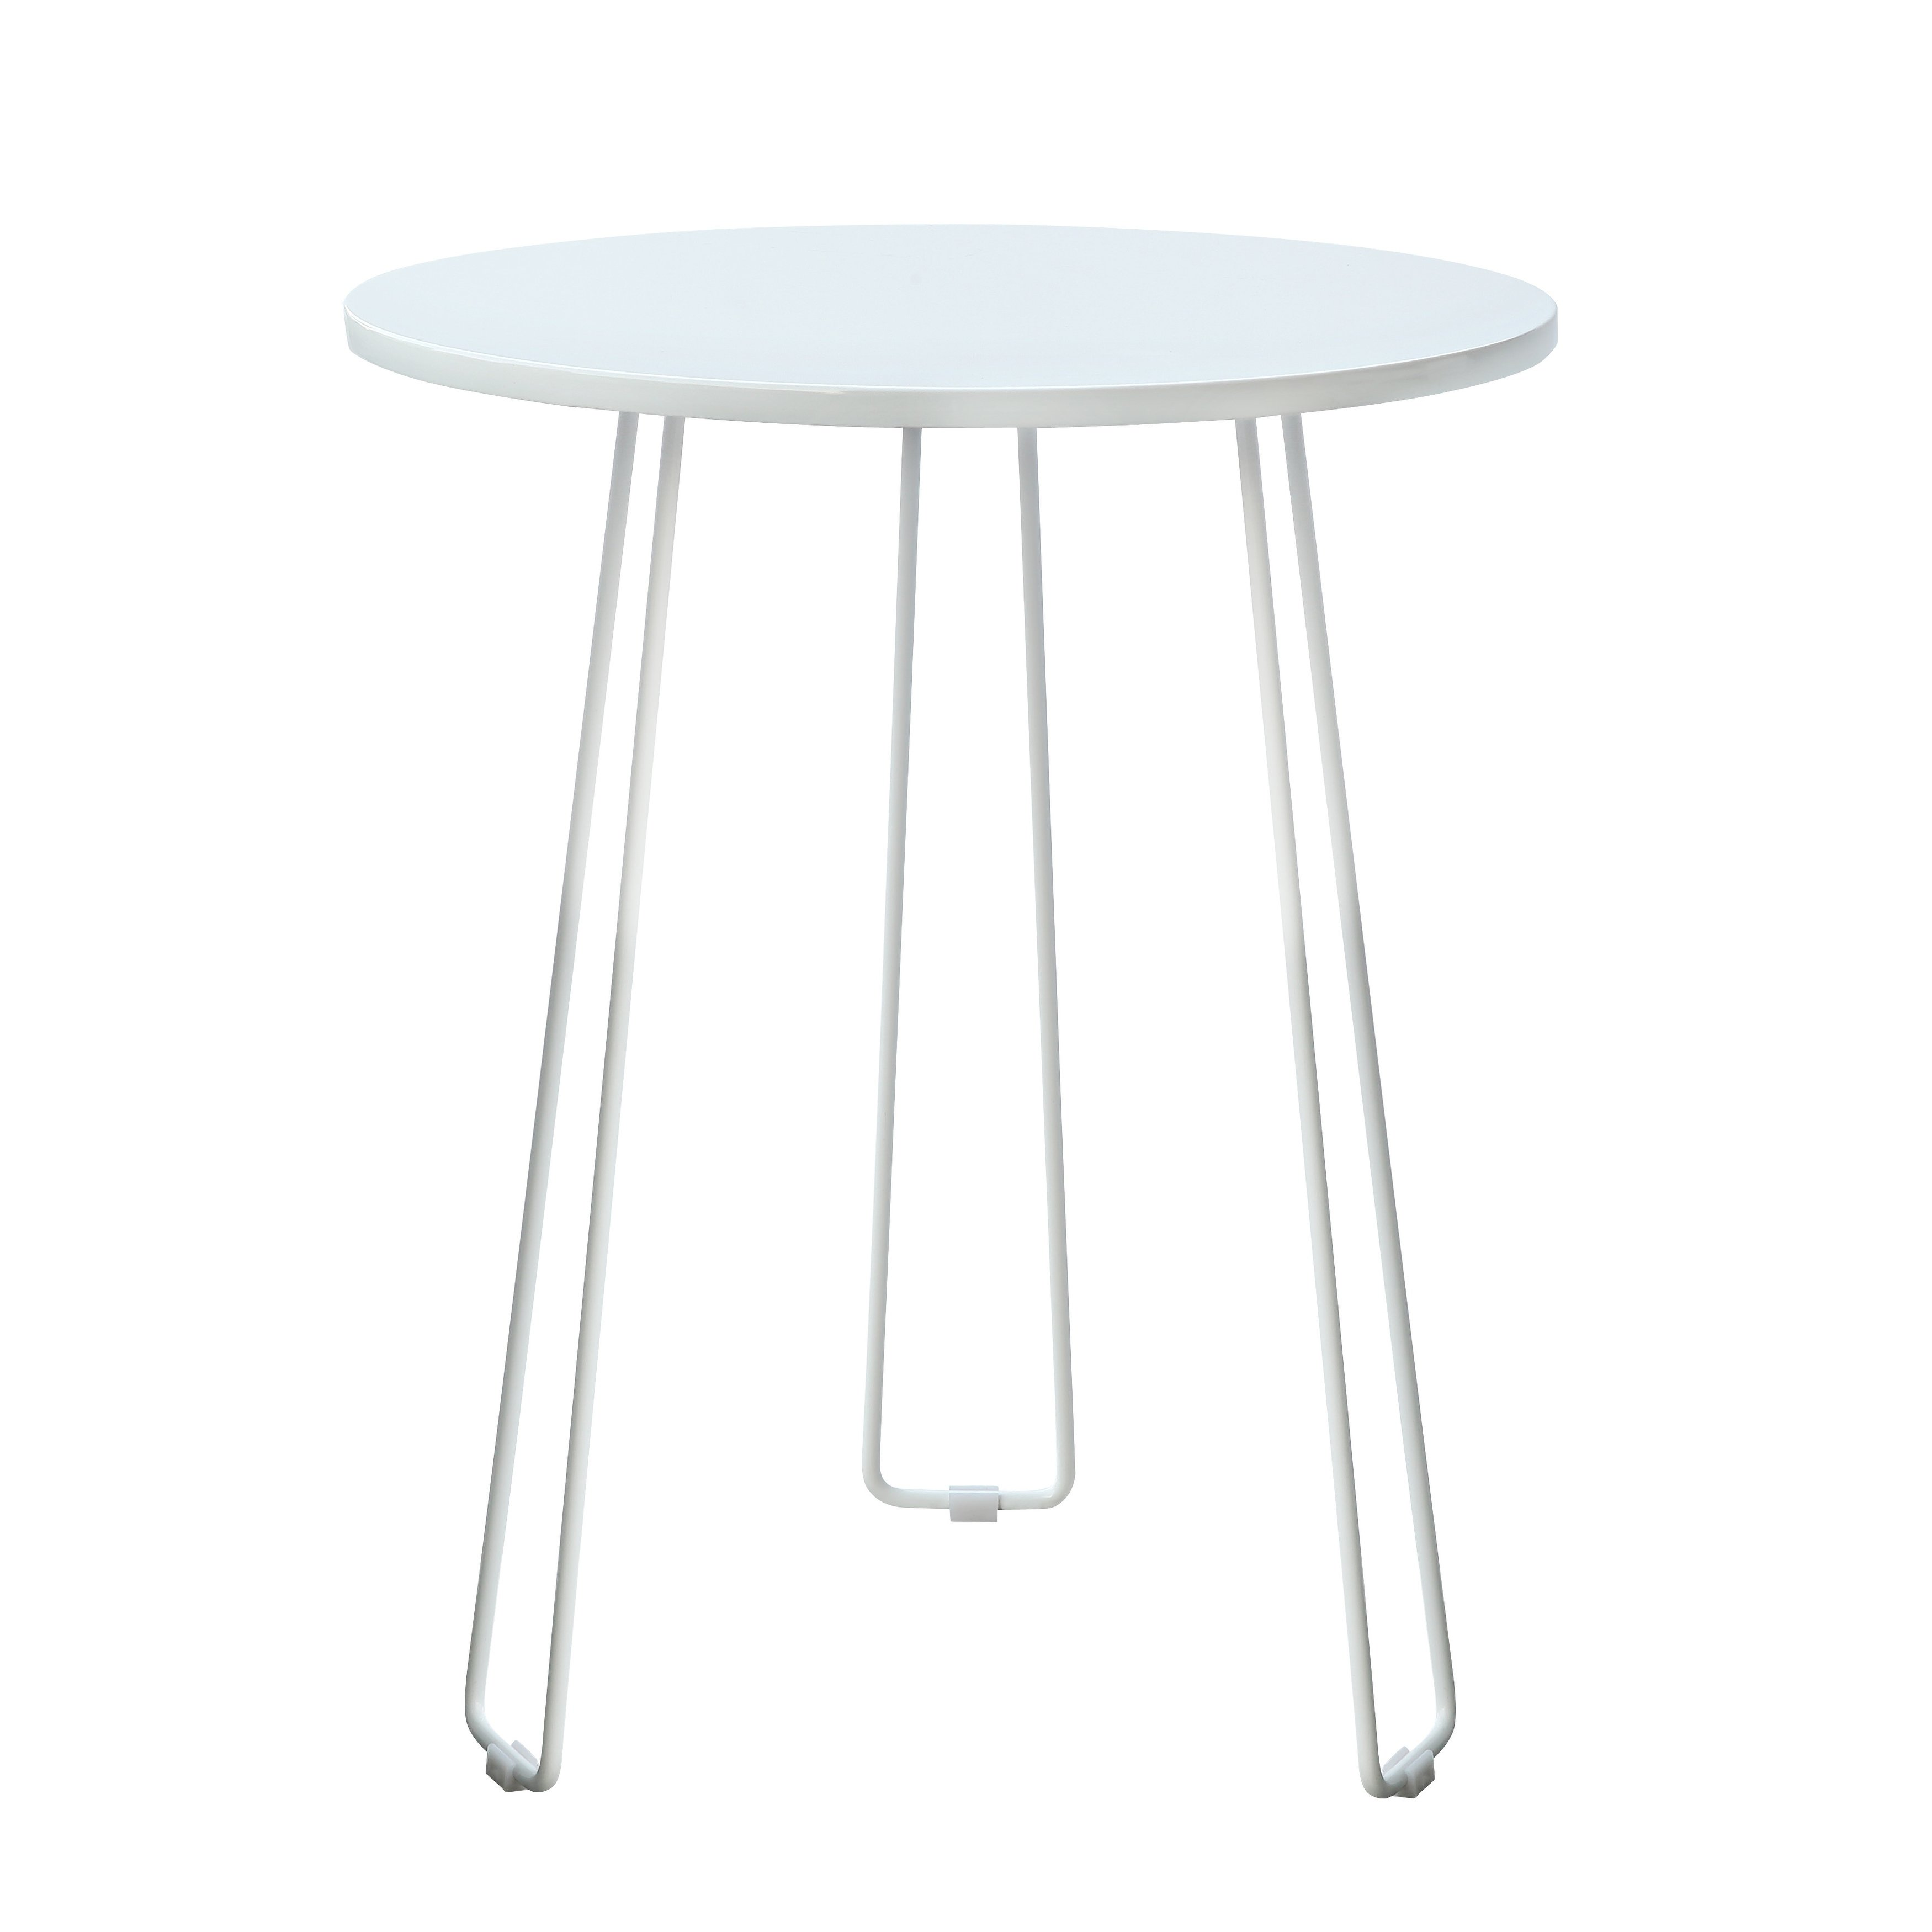 poly and bark coffette hairpin end table white free room essentials accent walnut shipping today rosette tablecloth narrow console with shelves small coffee ideas square glass